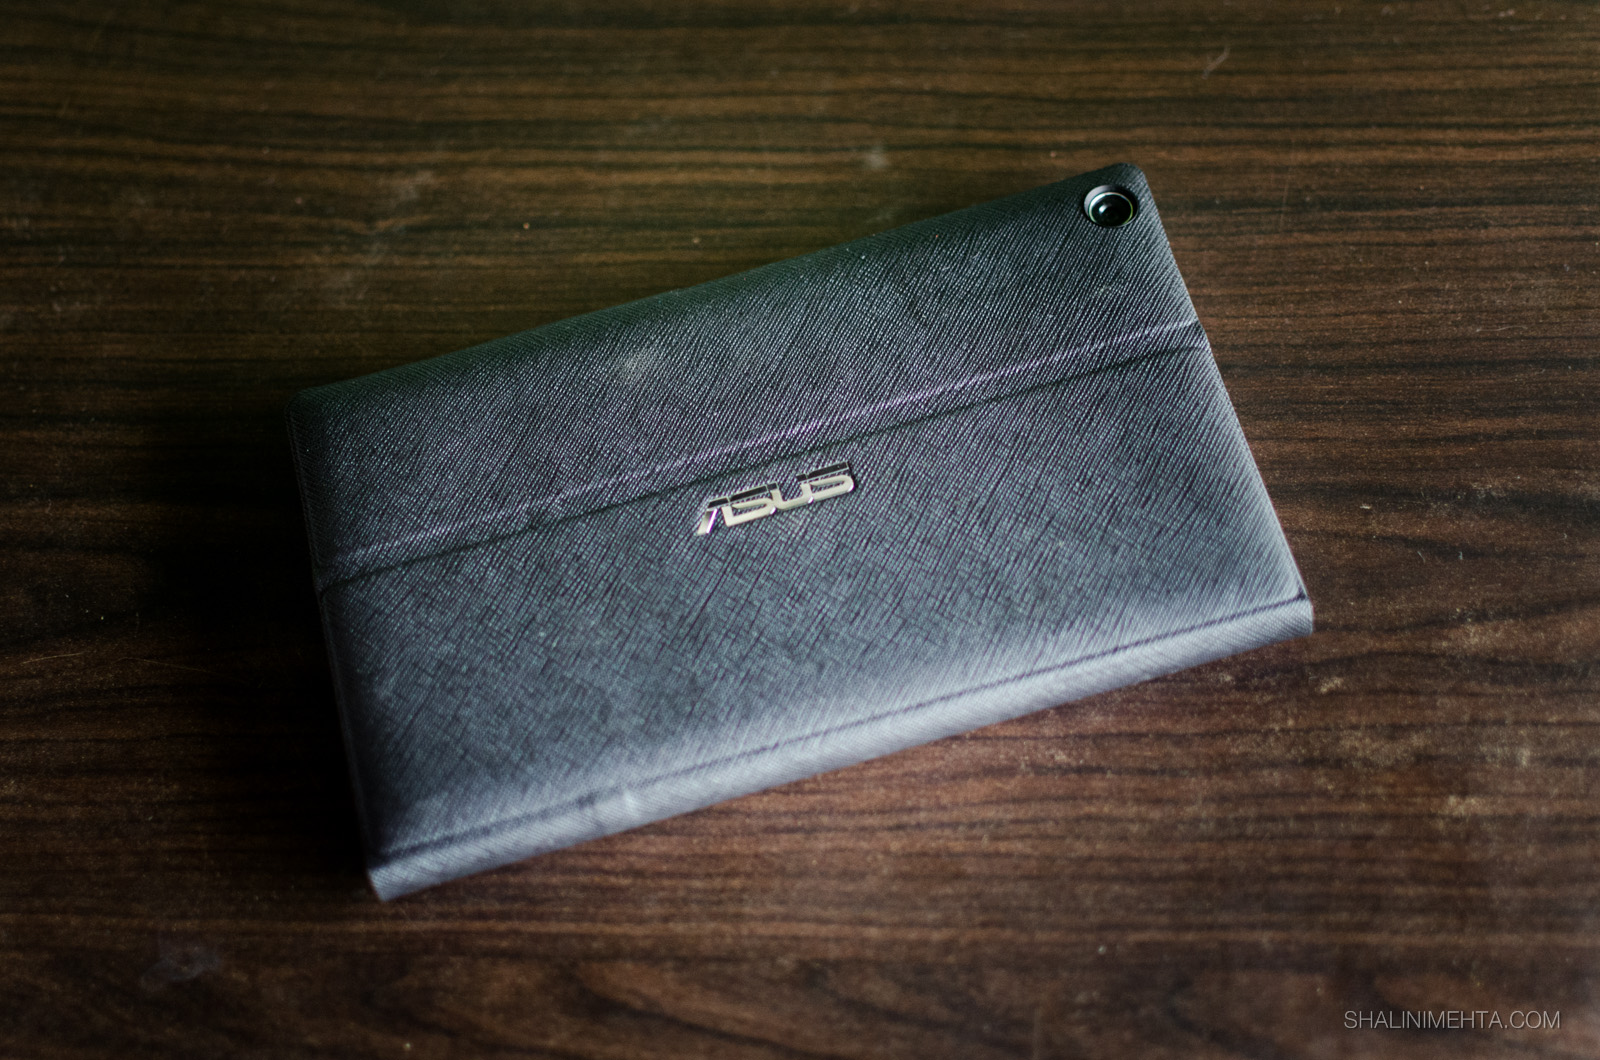 003_asus_zenpad_7_audio_cover_review_shalinimehta.com